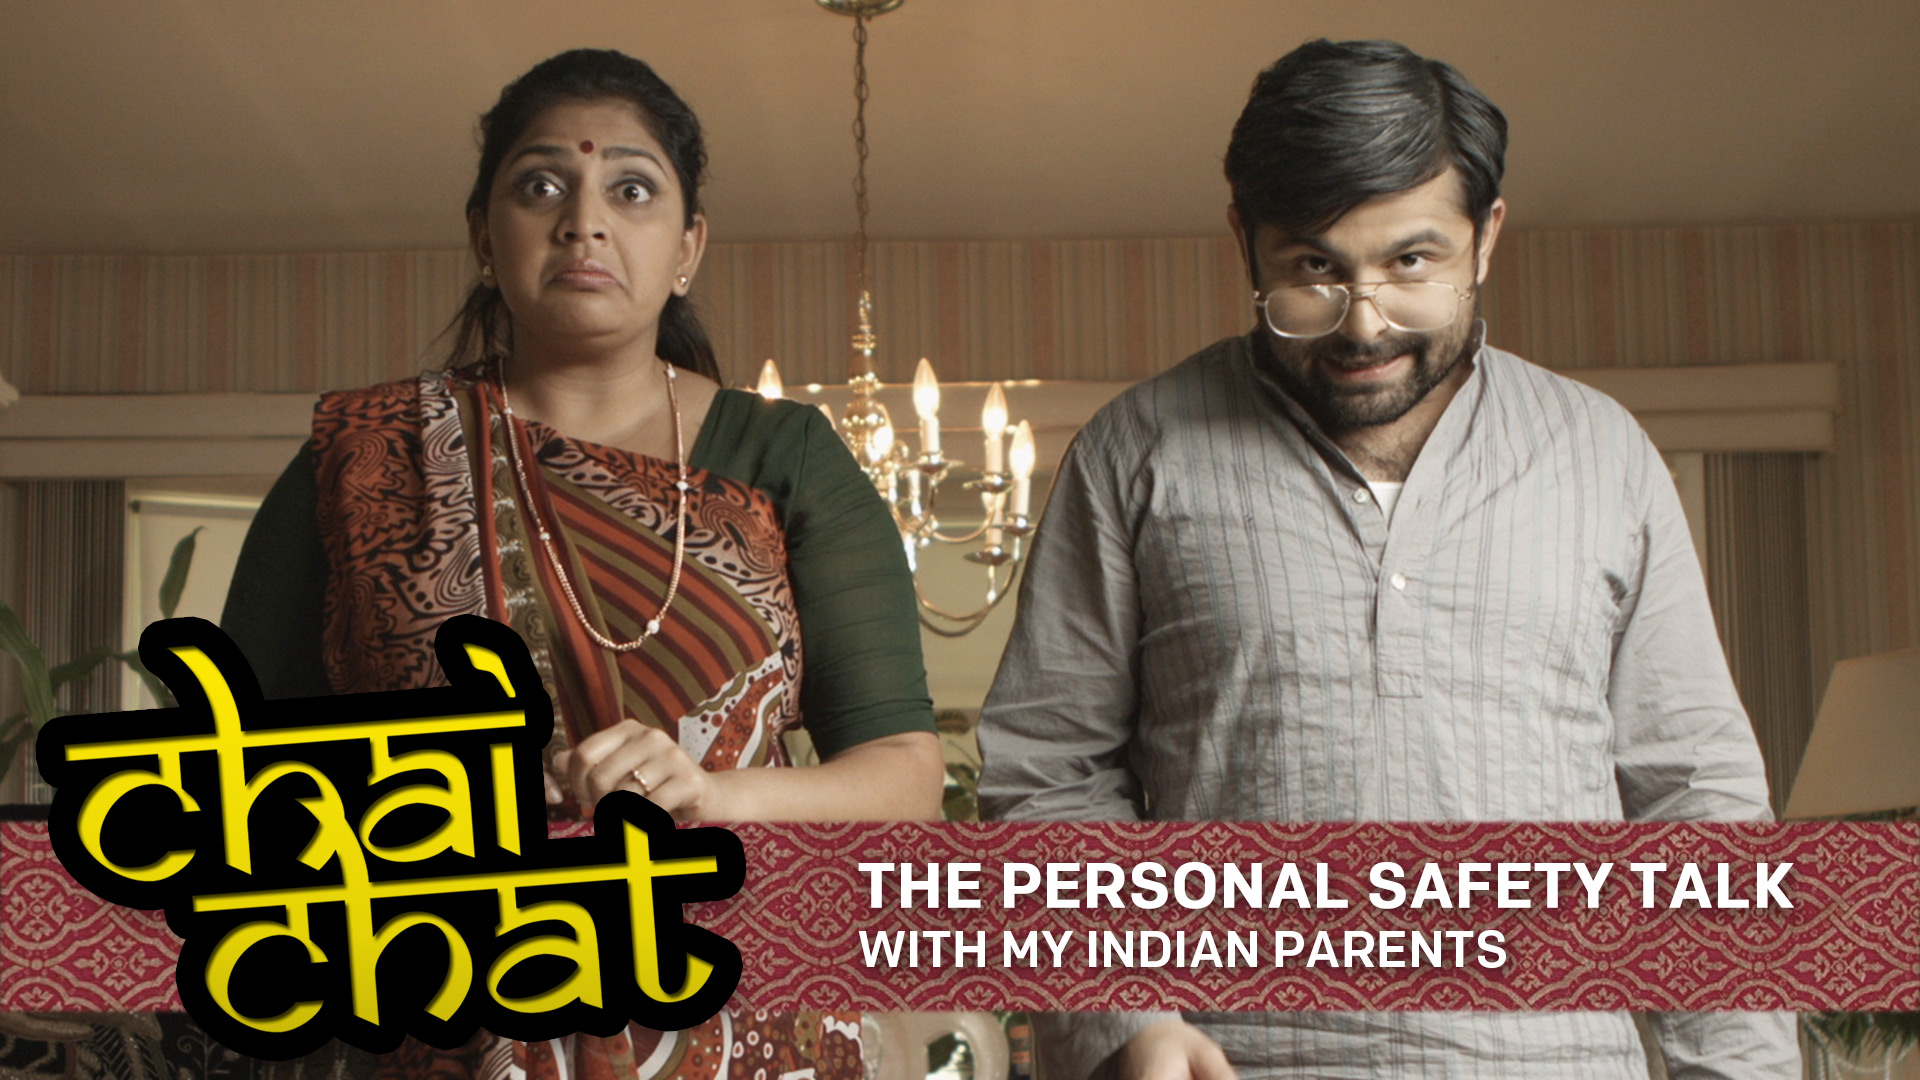 Chai Chat: The Personal Safety Talk - With My Indian Parents